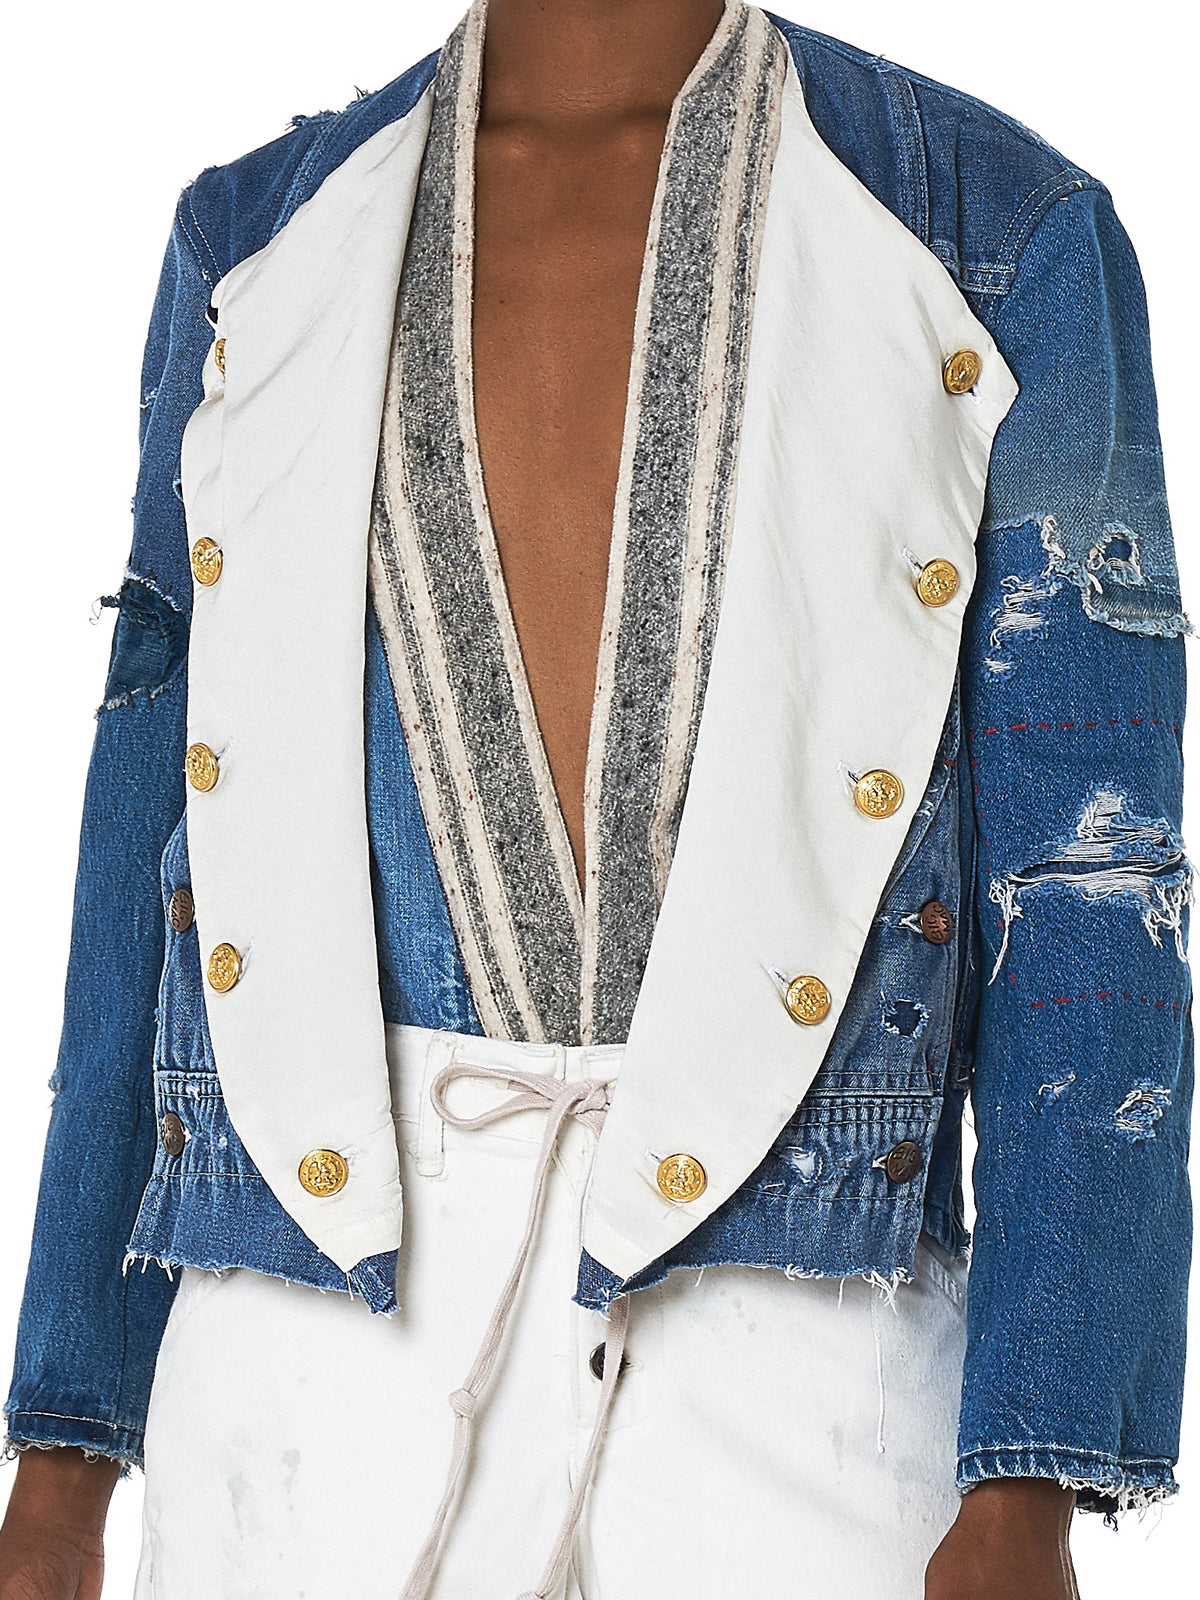 Greg Lauren Denim Jacket - Hlorenzo Detail 2